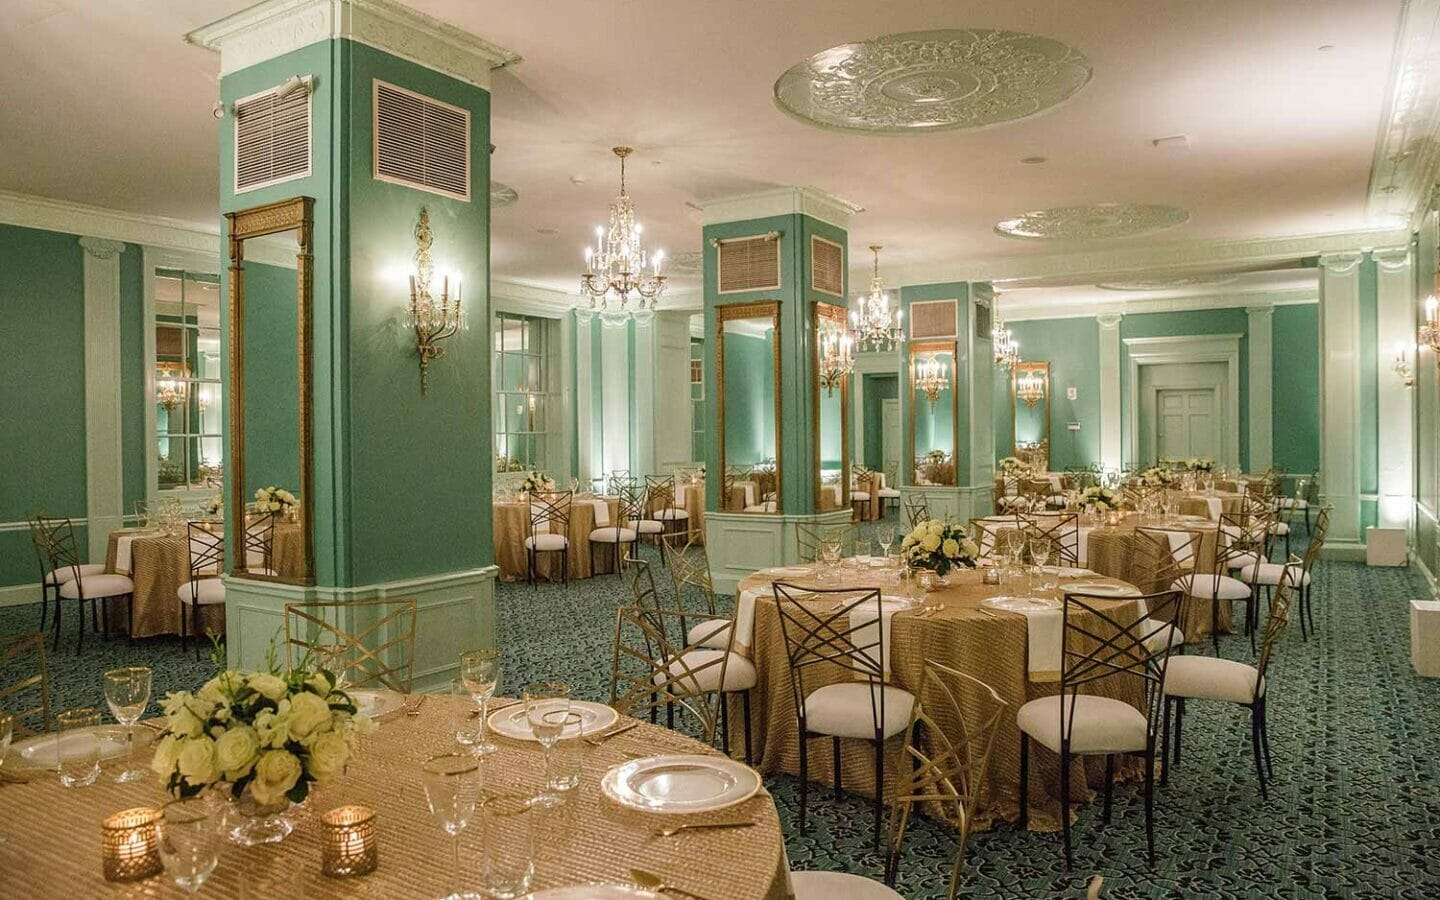 interior event venue at The Read House with set tables and lavish decor